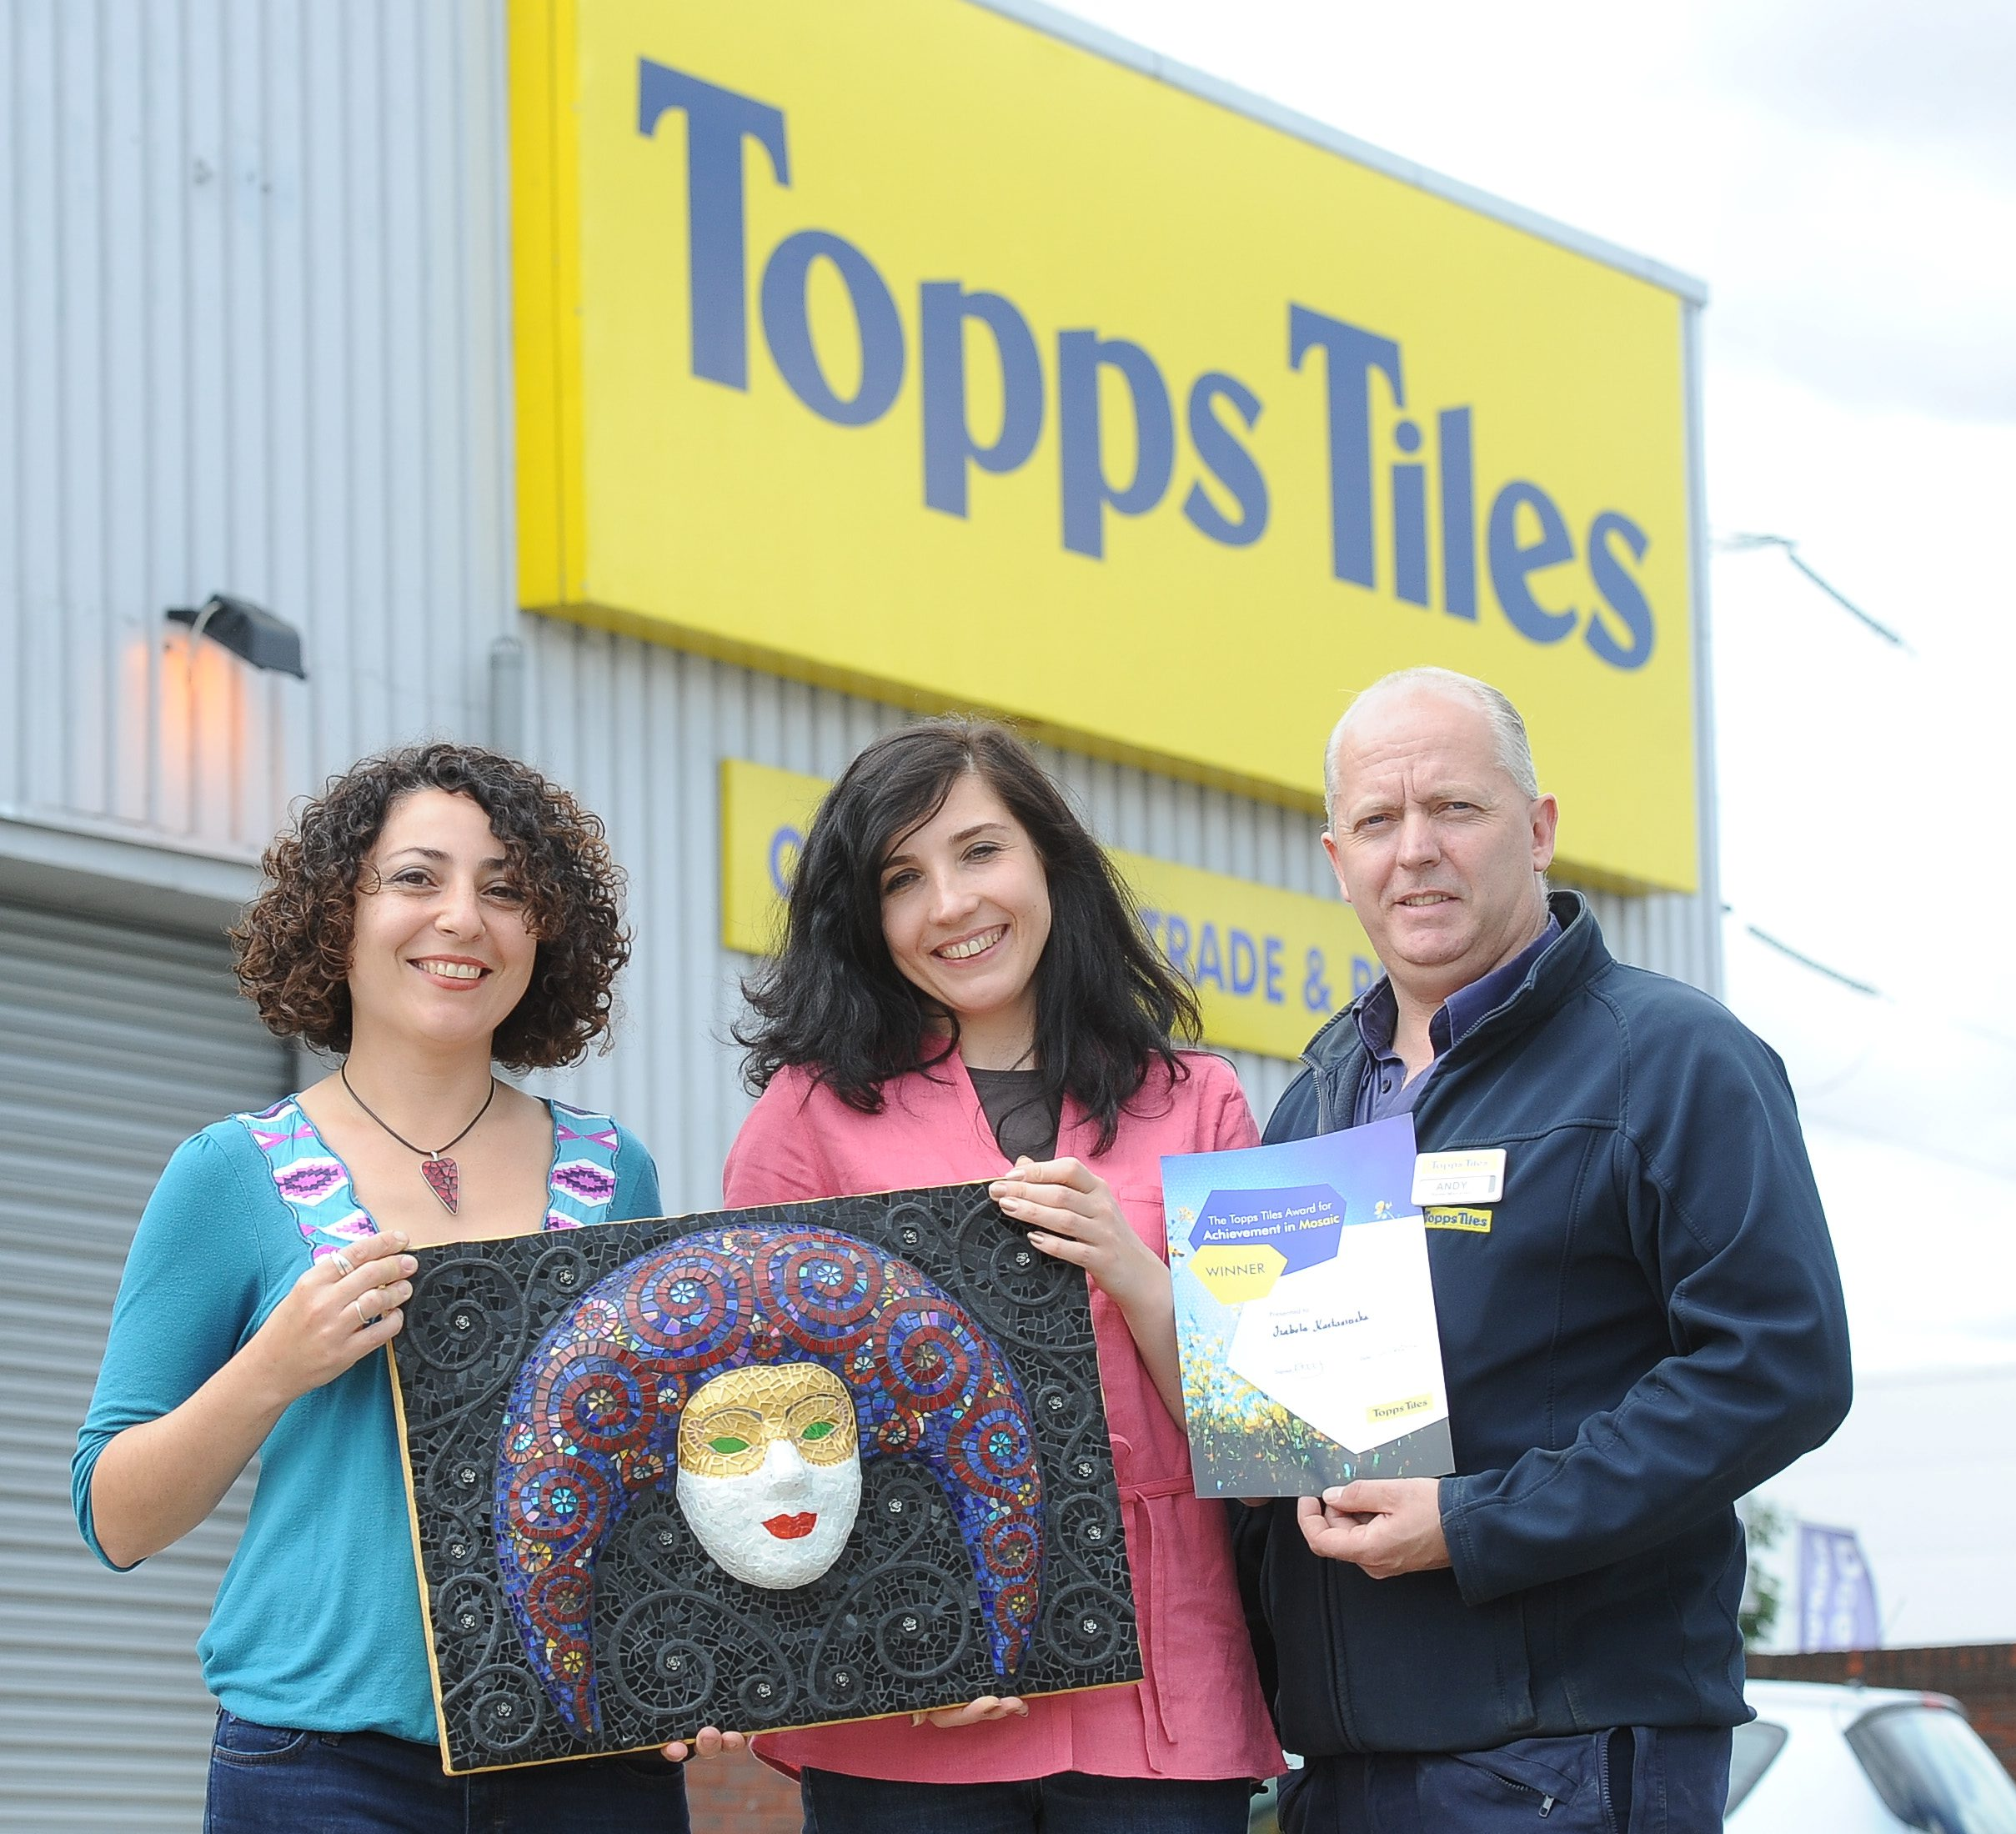 Topps Tiles Award Mosaic Art London